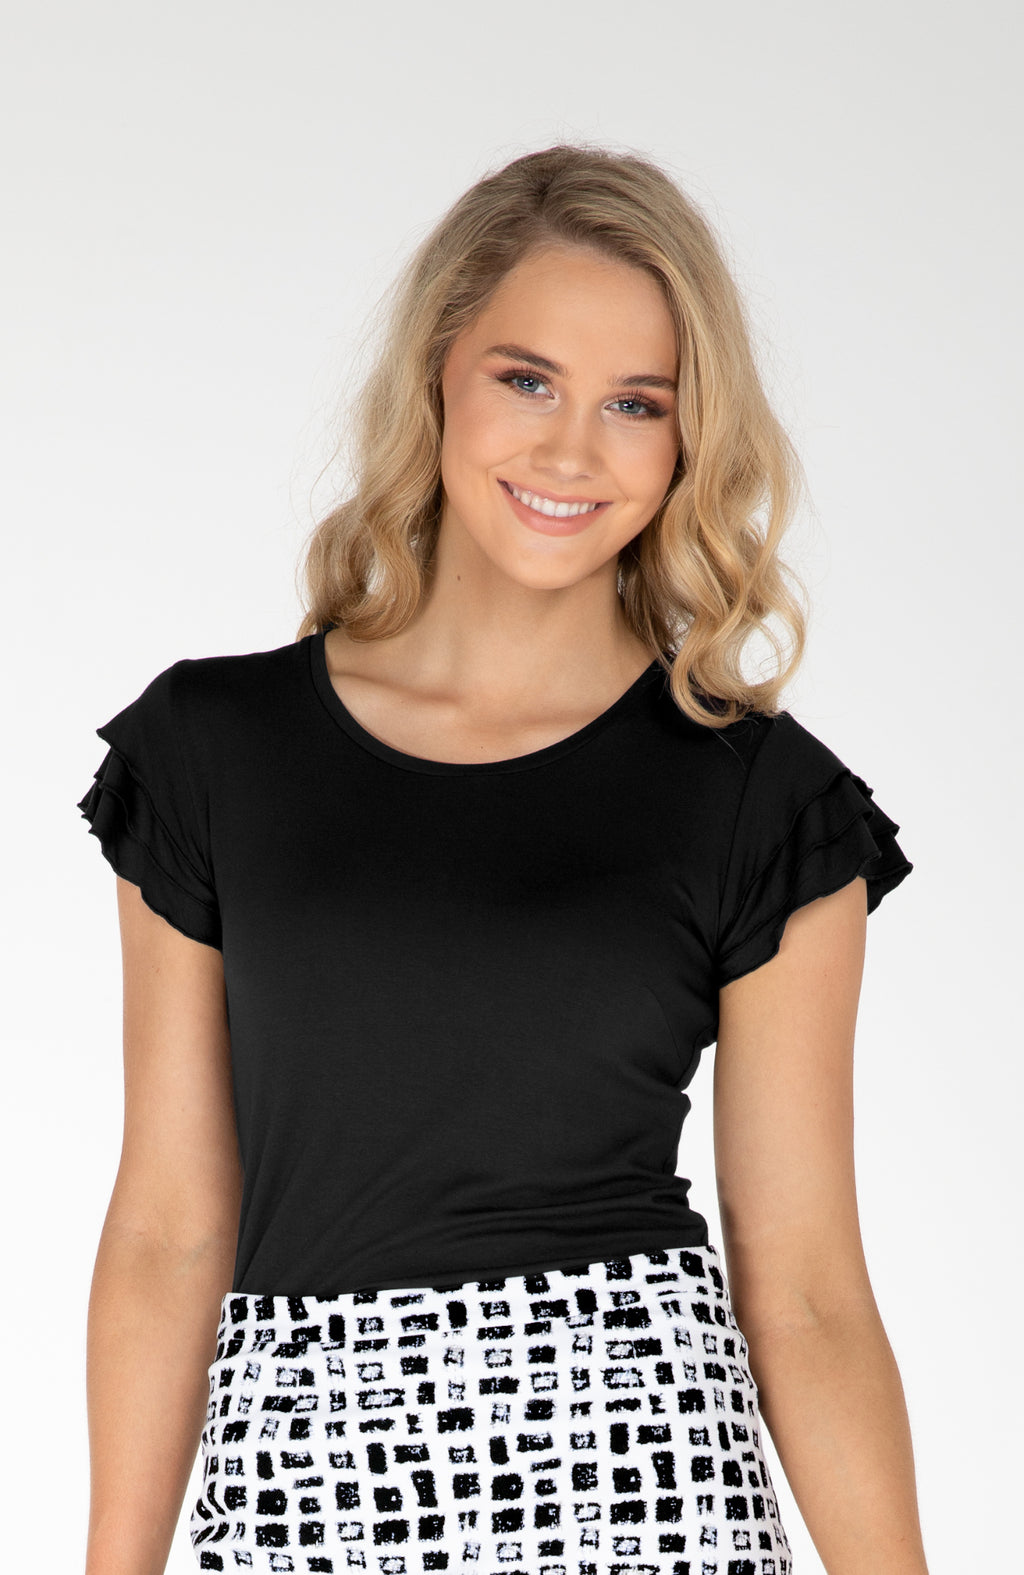 Ally Frilled-Sleeve Top - Black PRE-ORDER